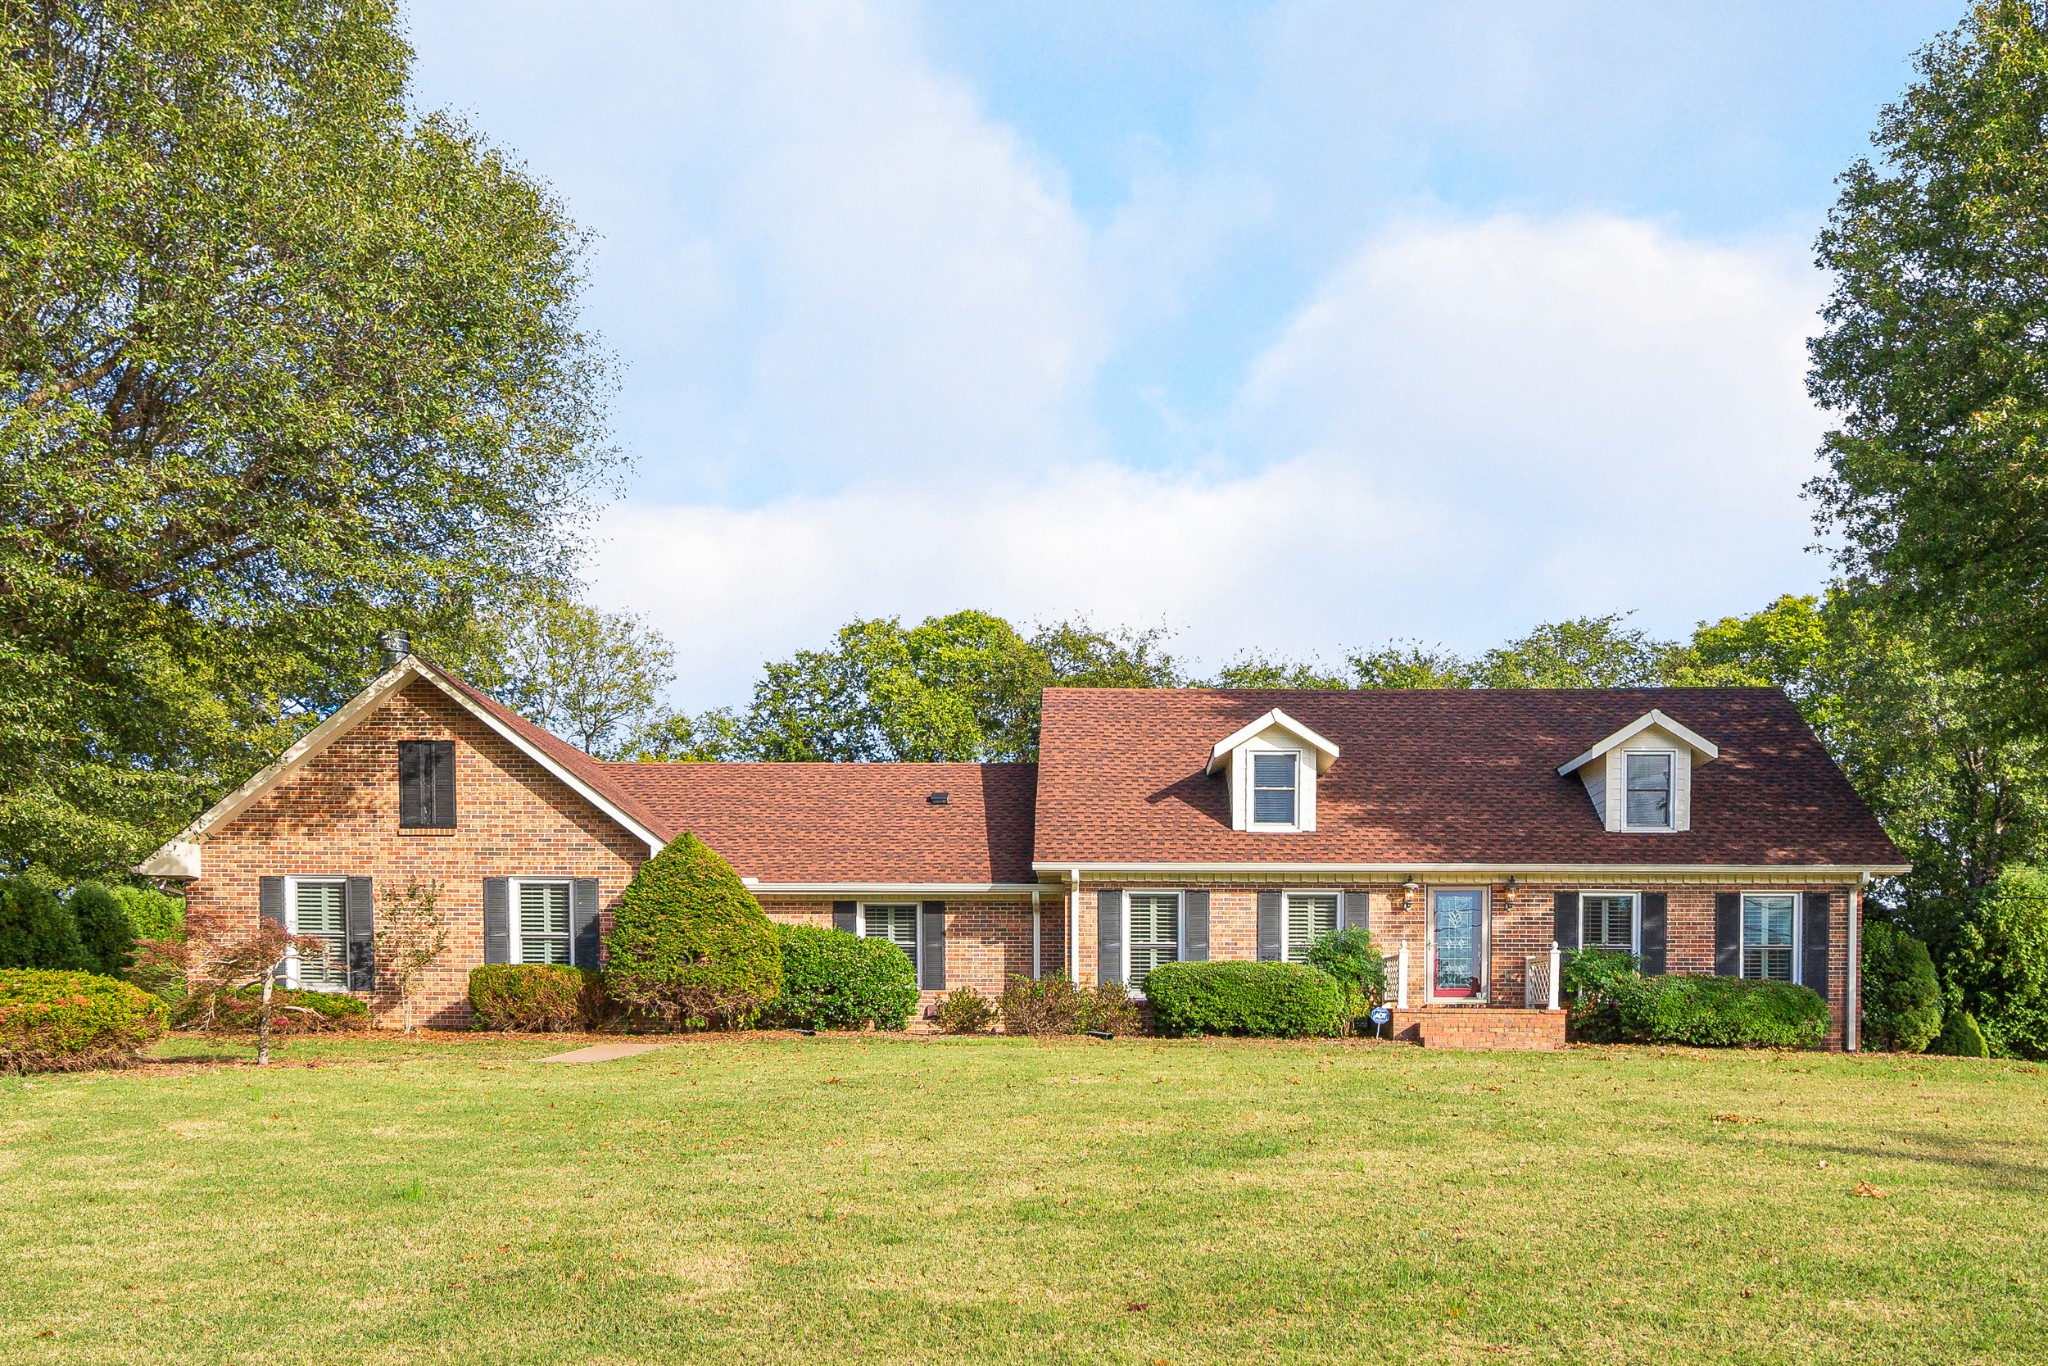 317 Willow Bough Ln, Old Hickory, TN 37138 - Old Hickory, TN real estate listing